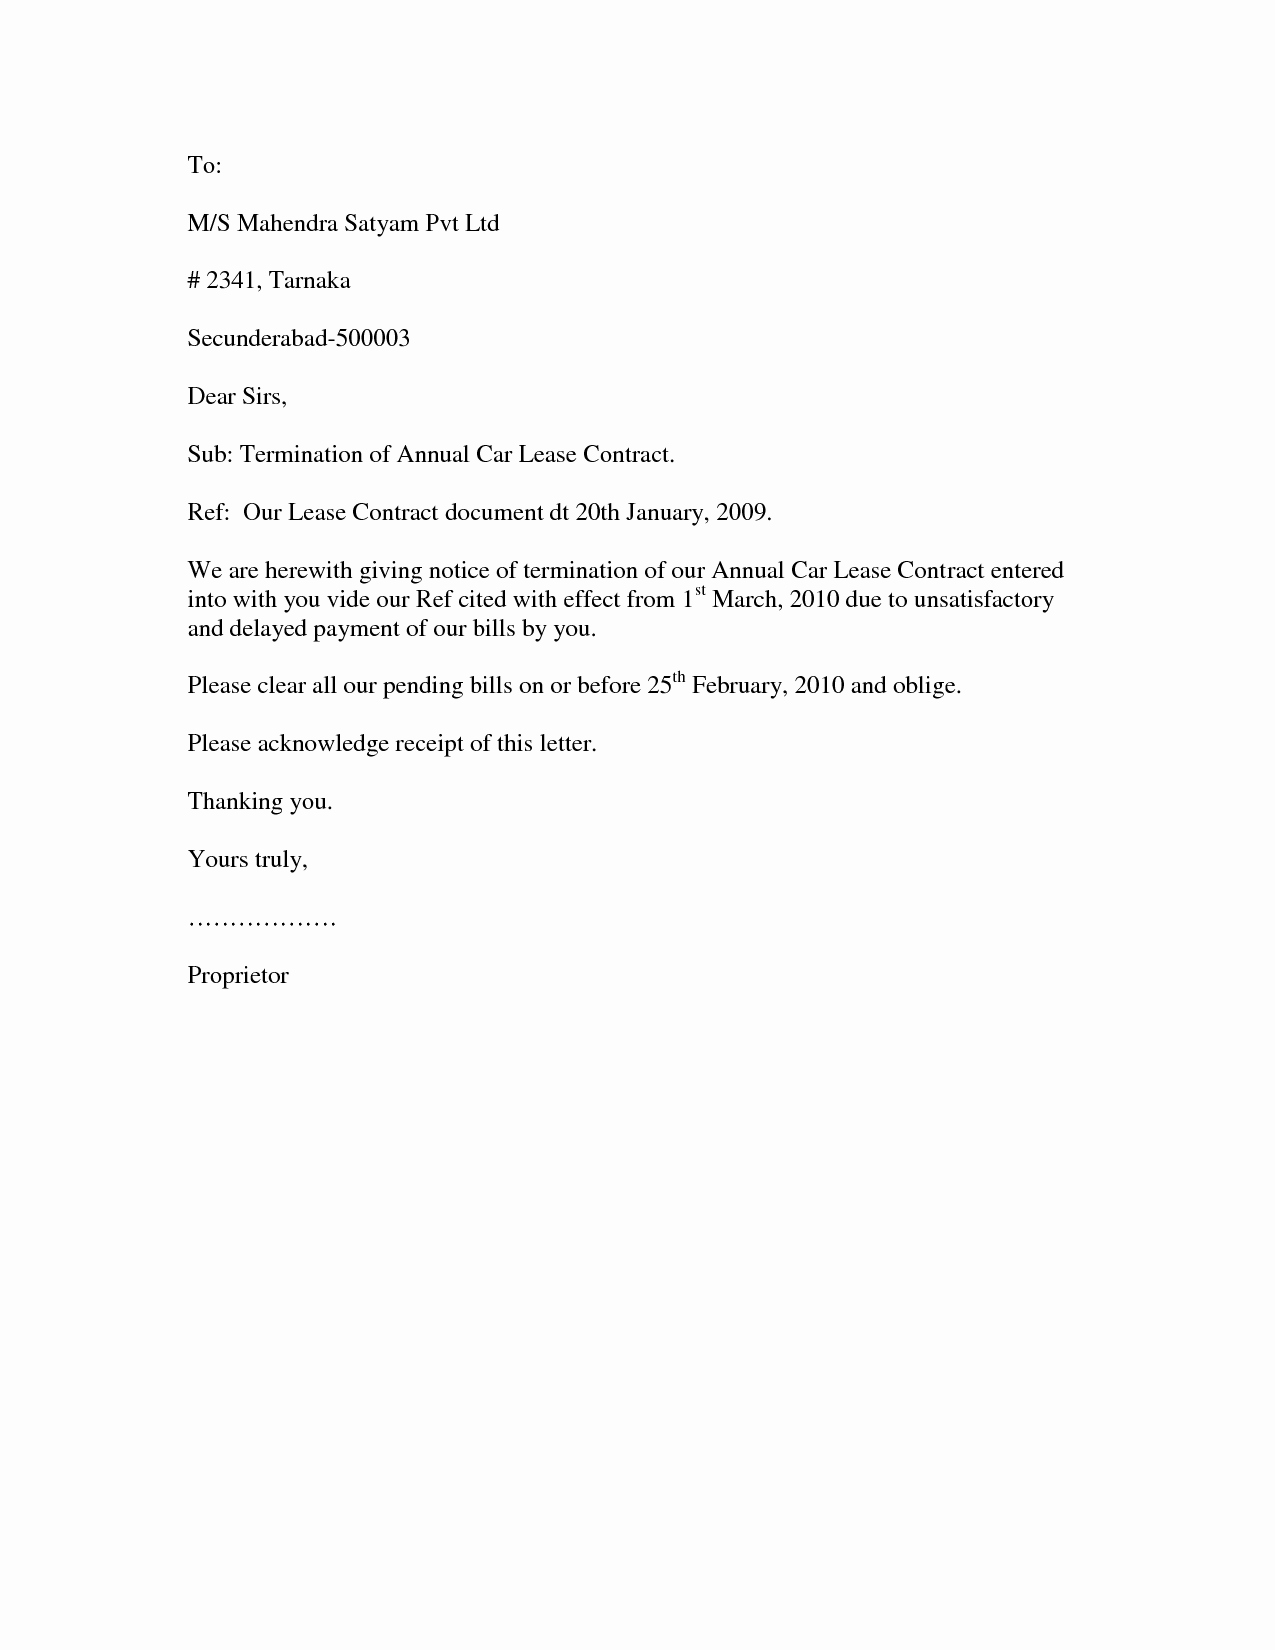 Contract Termination Letter format Best Template Collection